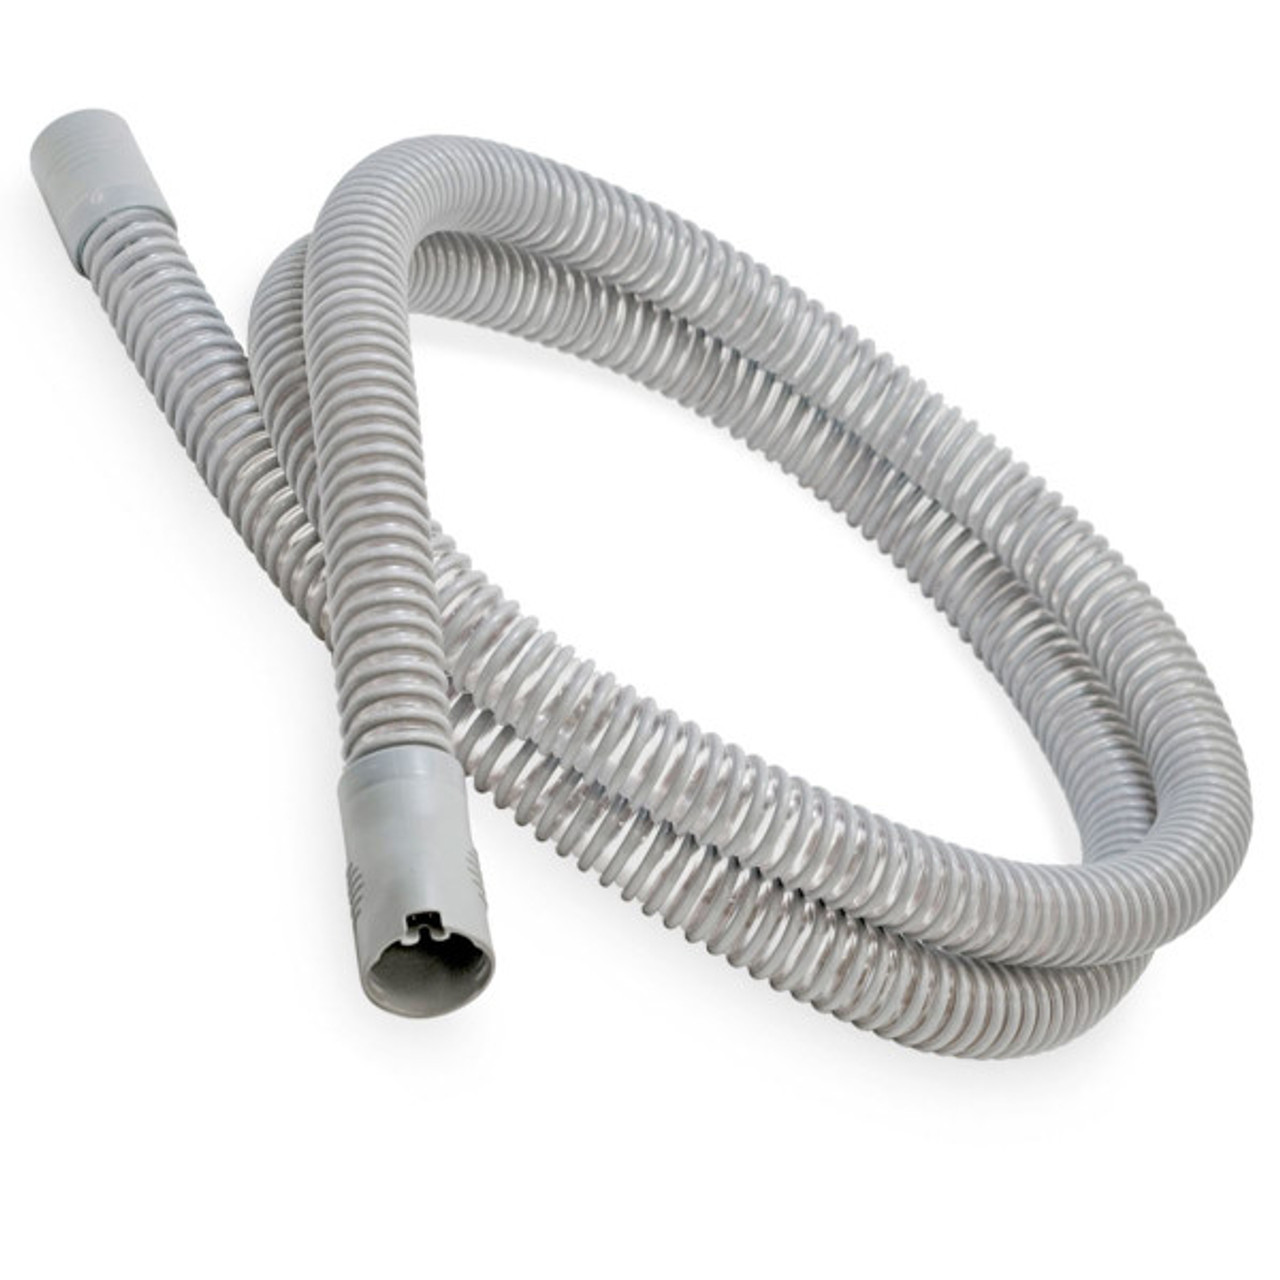 Fisher and Paykel ThermoSmart Heated Breathing Tube - ICON / ICON+